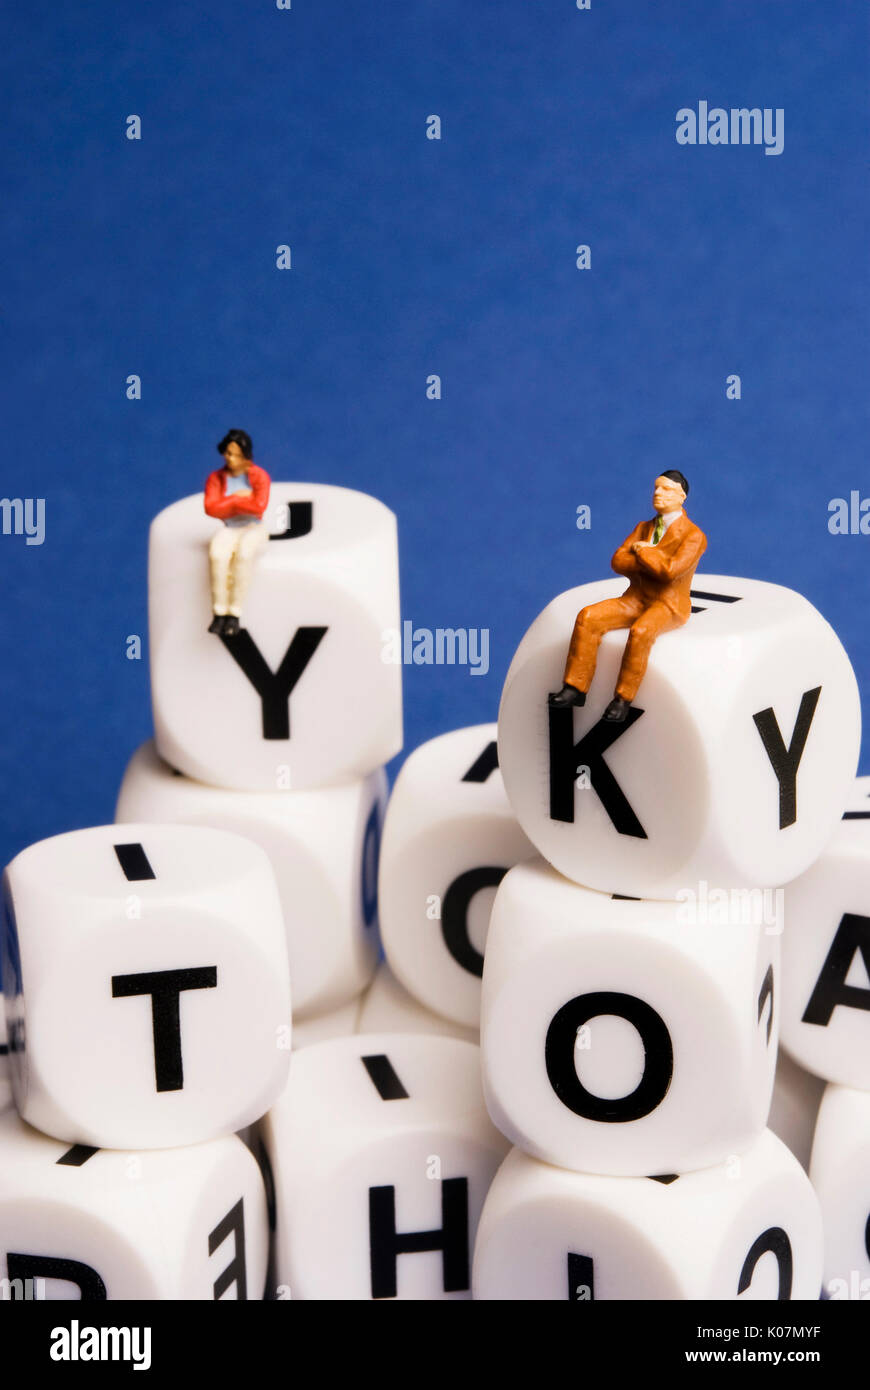 miniature figurines sitting on dice with alphabet letters, social media concept - Stock Image